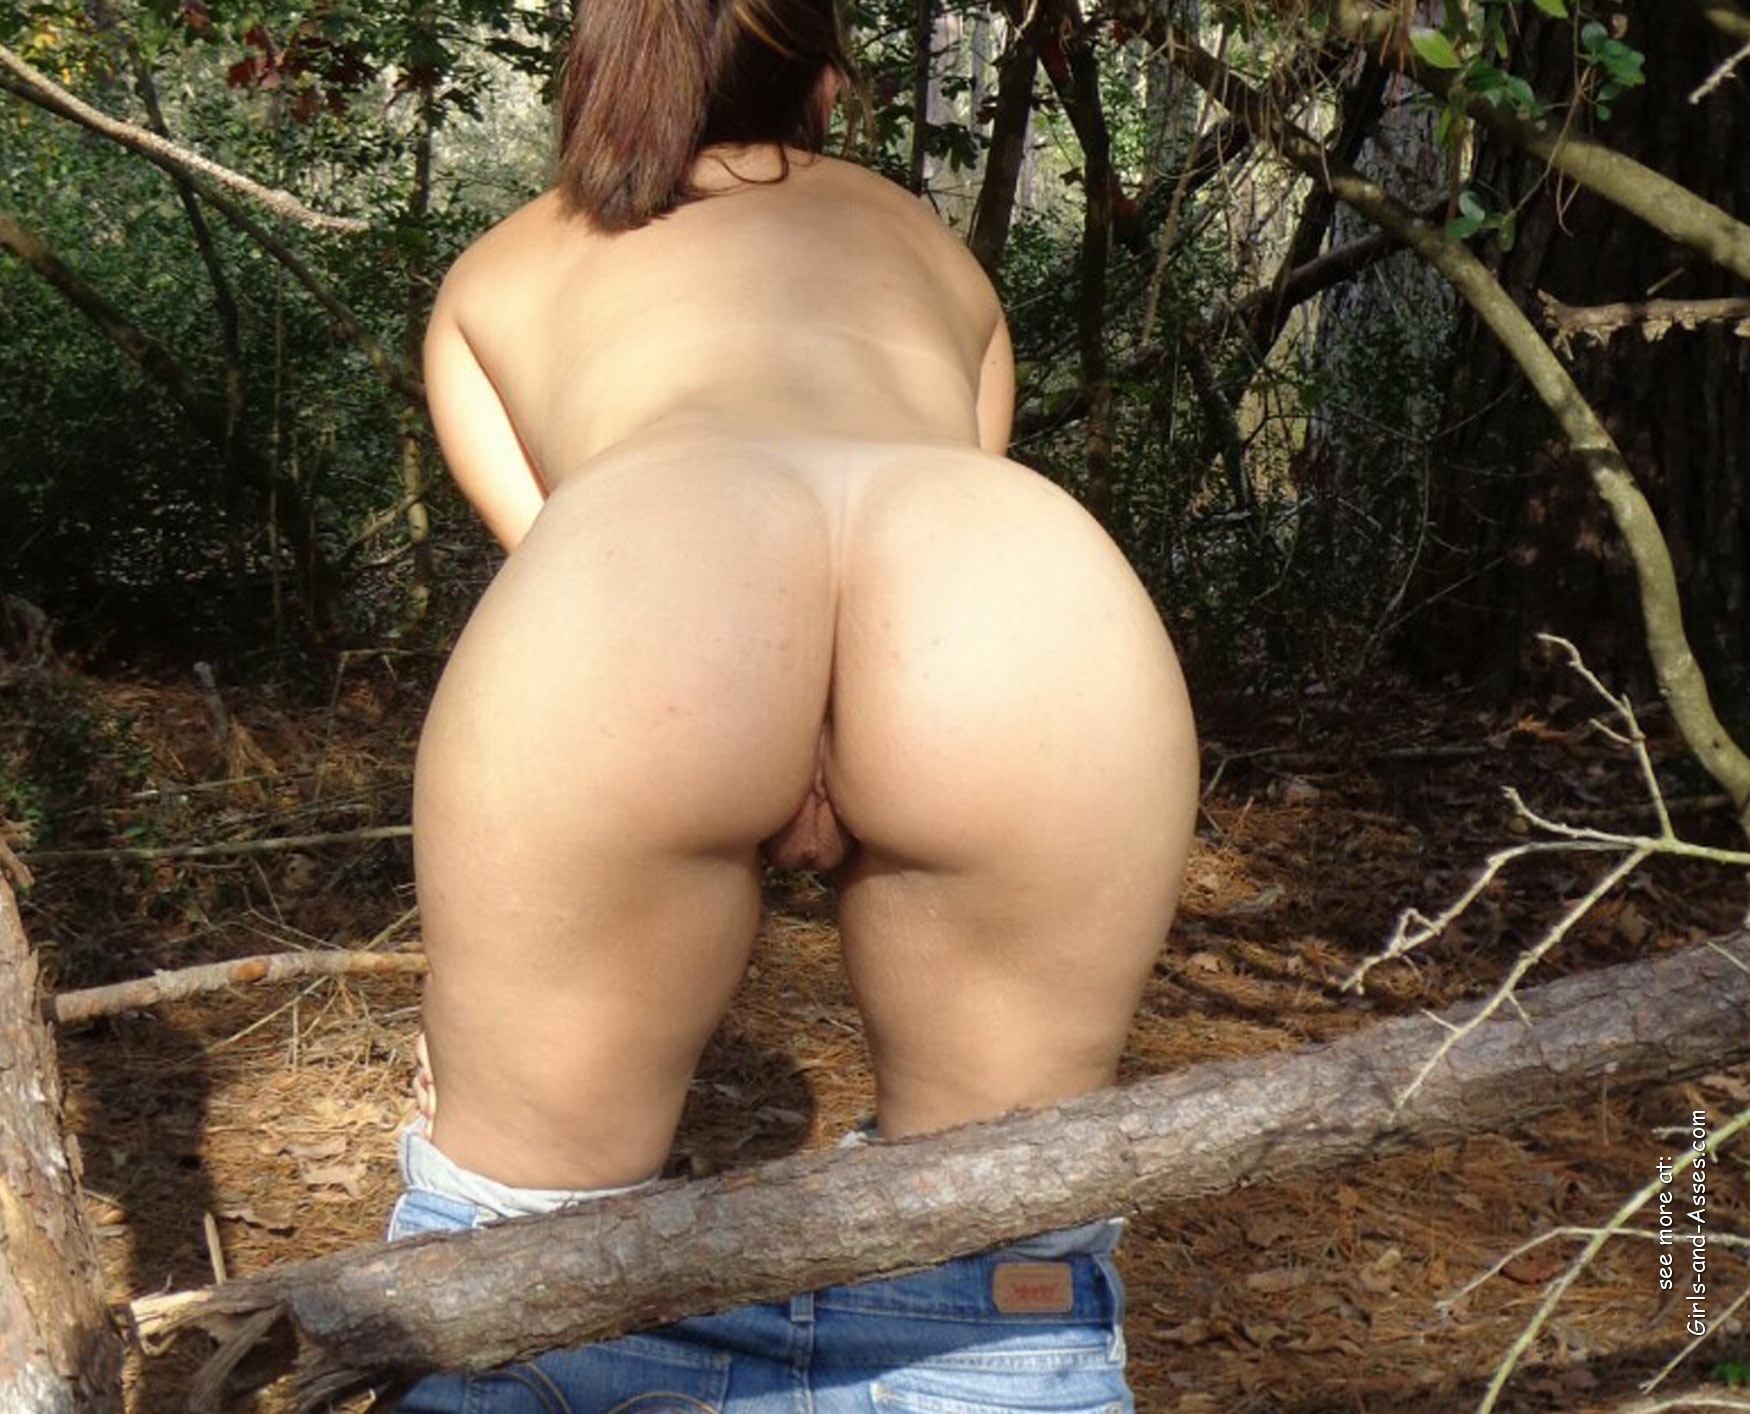 booty in the wild face down ass up picture 01956